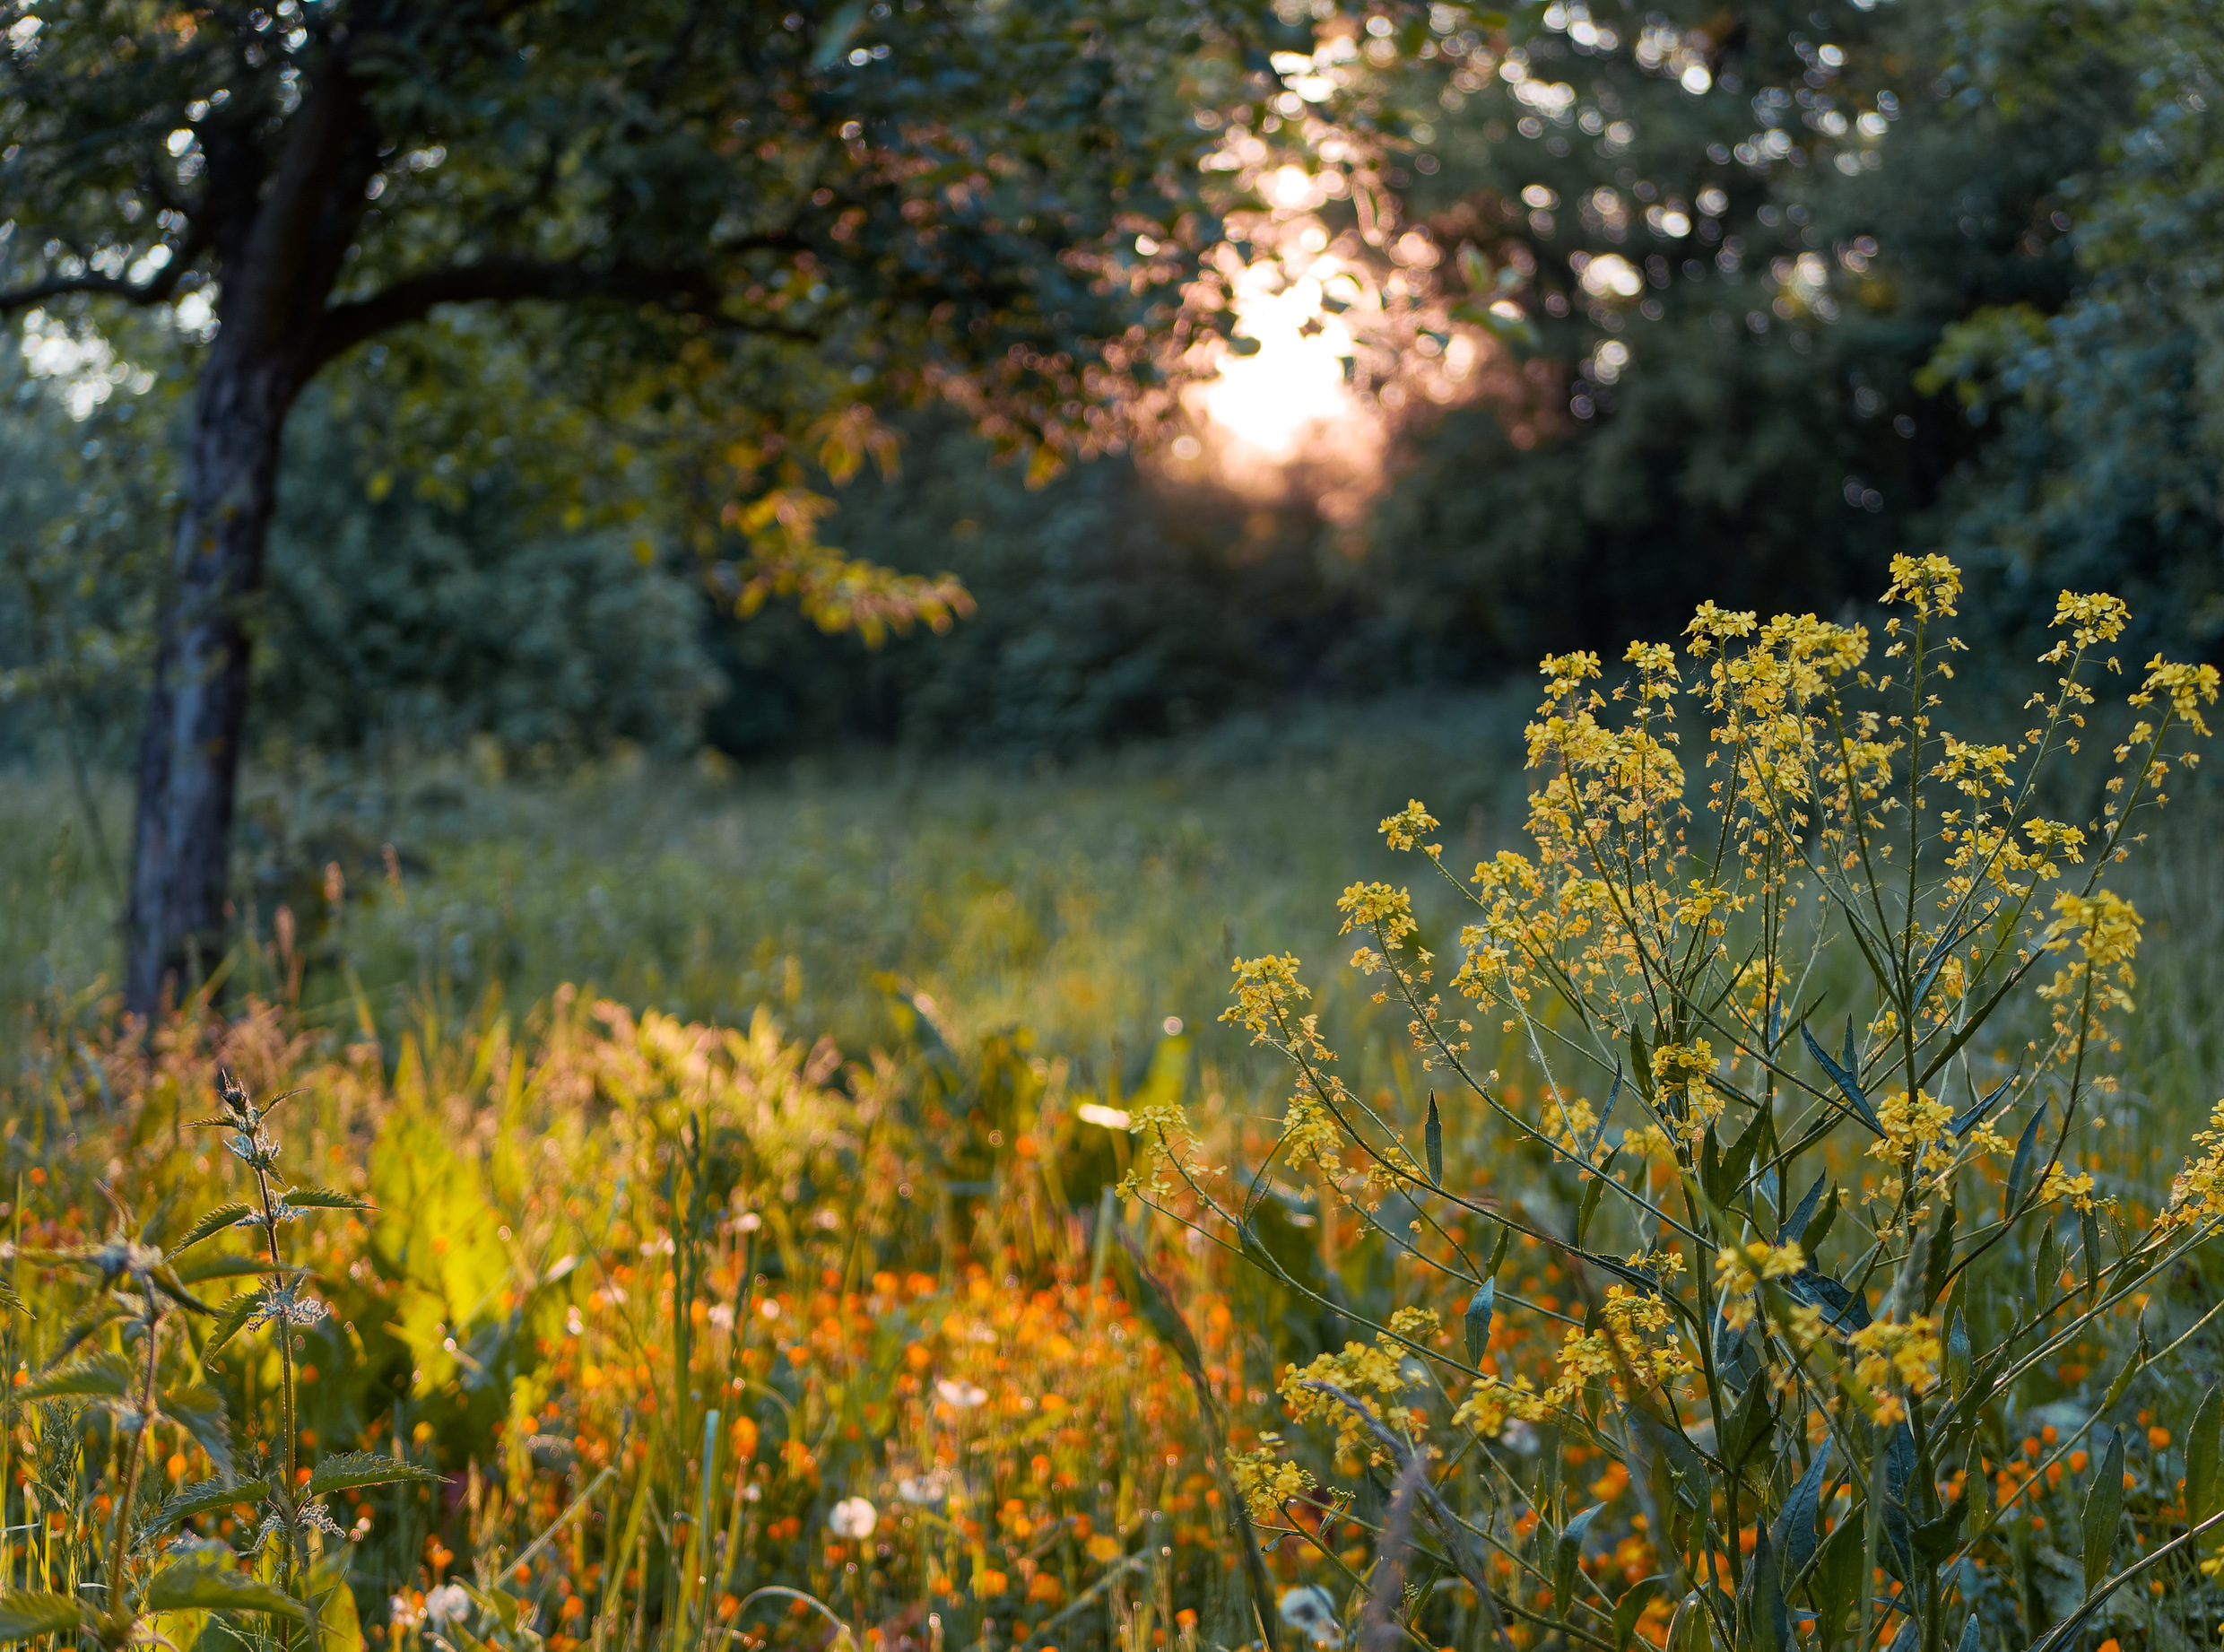 a_morning_in_spring_naturescape